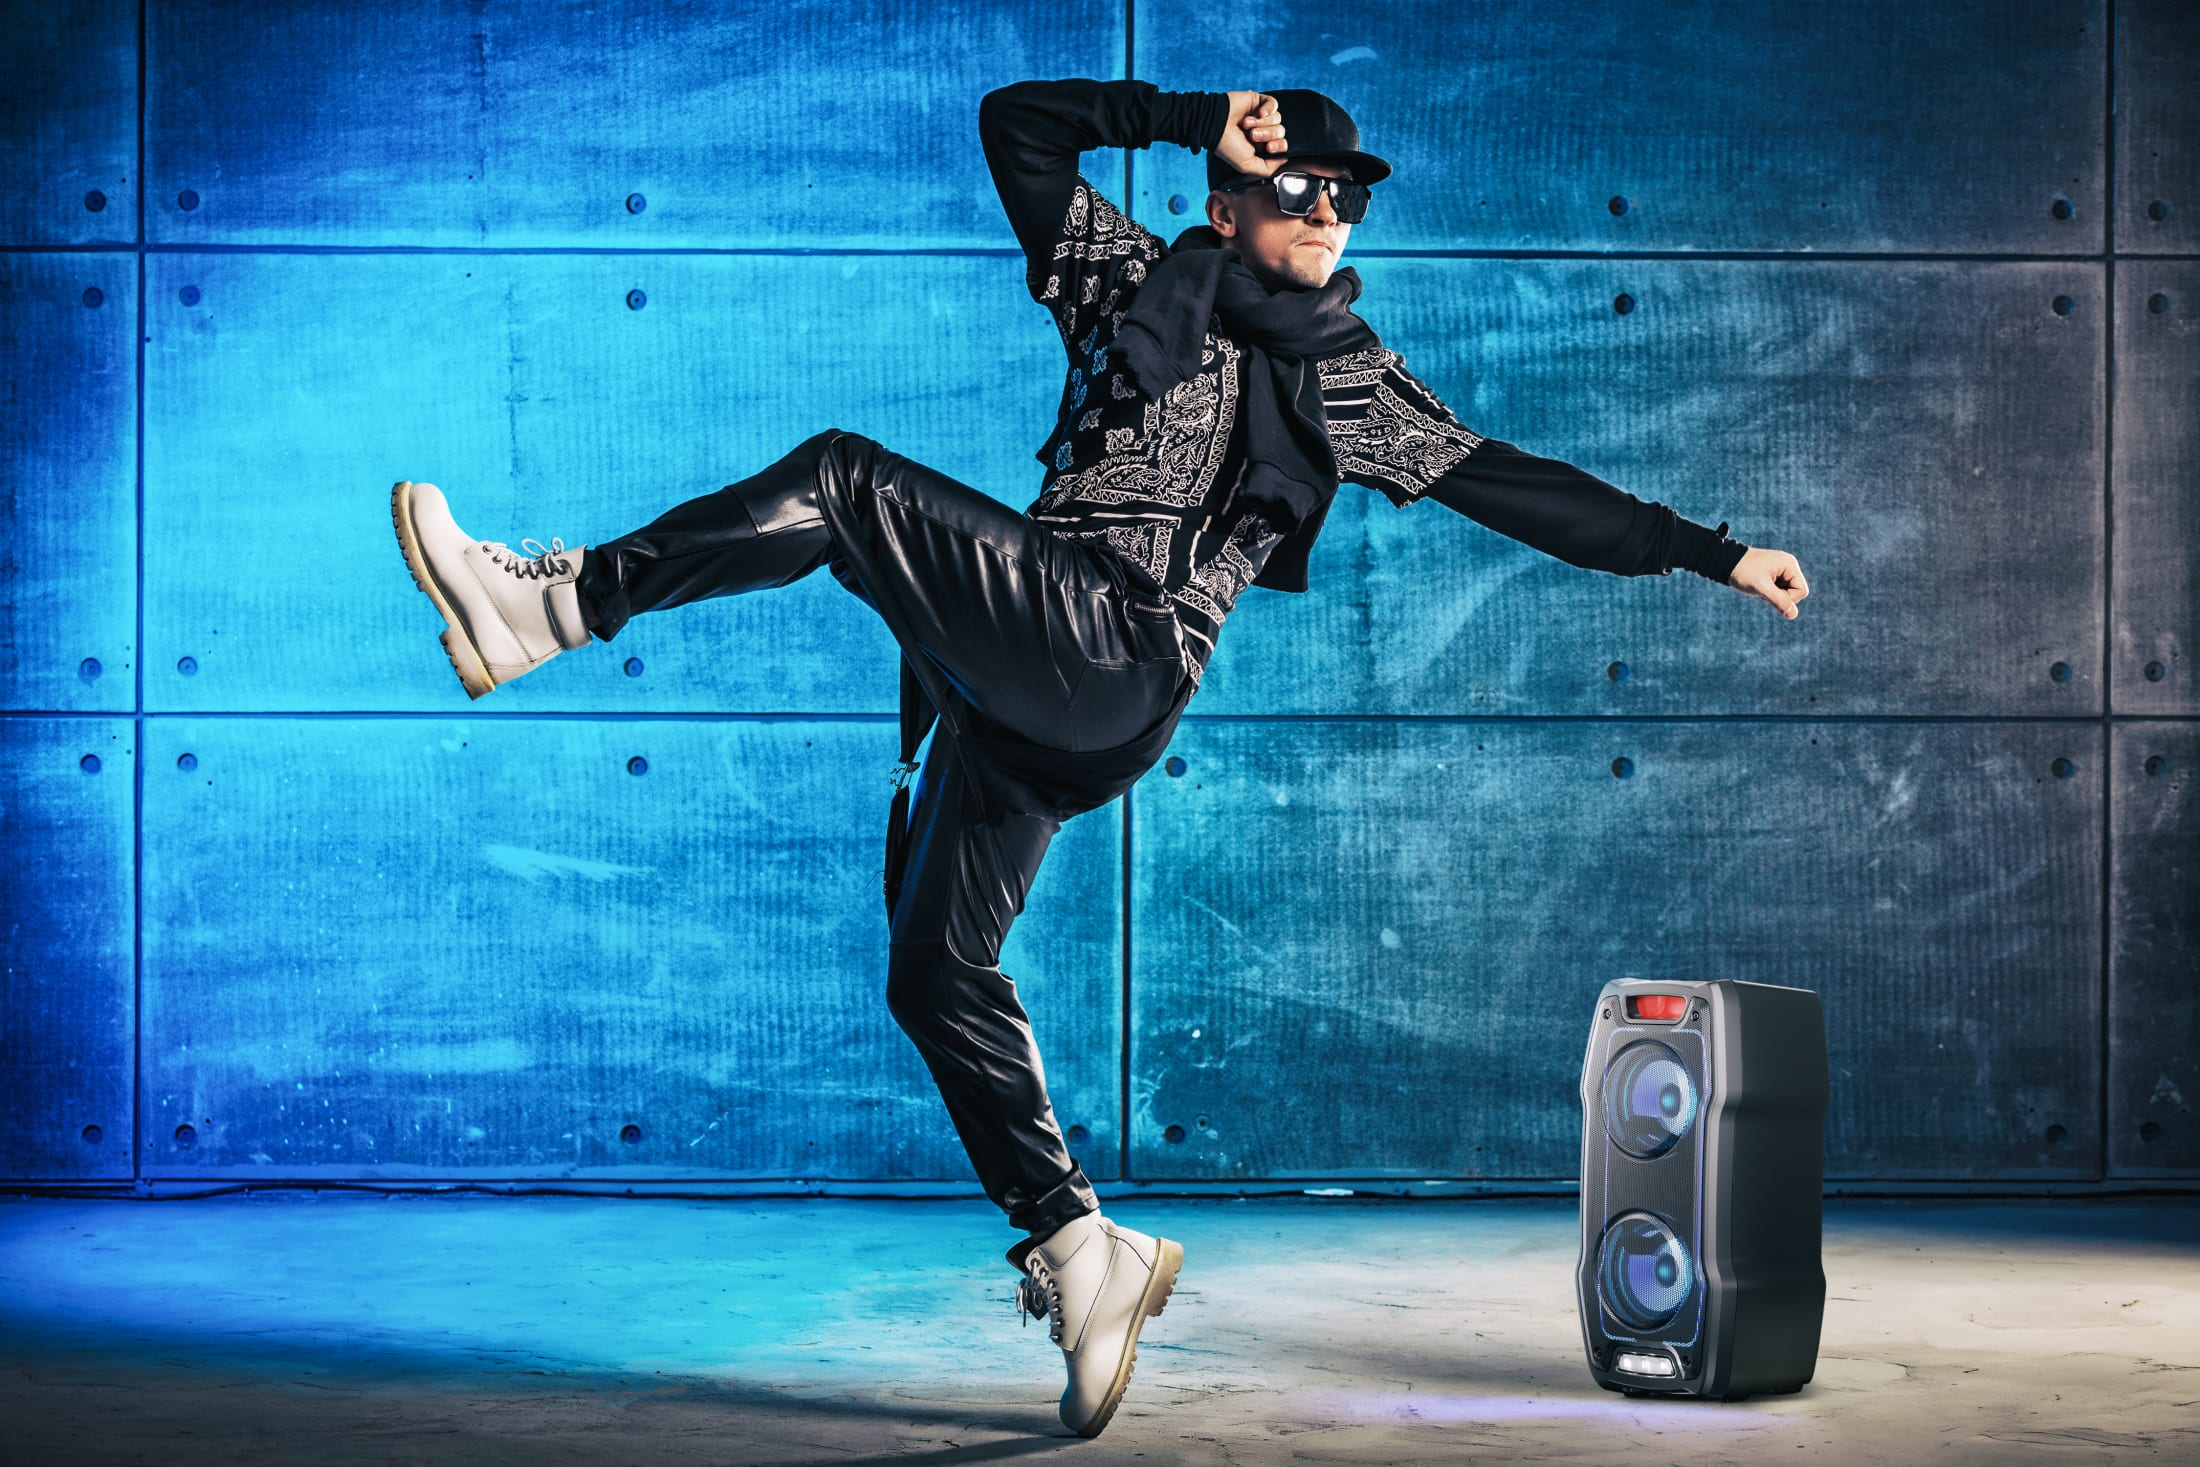 Party Speaker, 180 W, TWS to pair 2 units together, 13 h play time with built-in battery, LED flash light, Bluetooth wireless music streaming and and super bass effect.